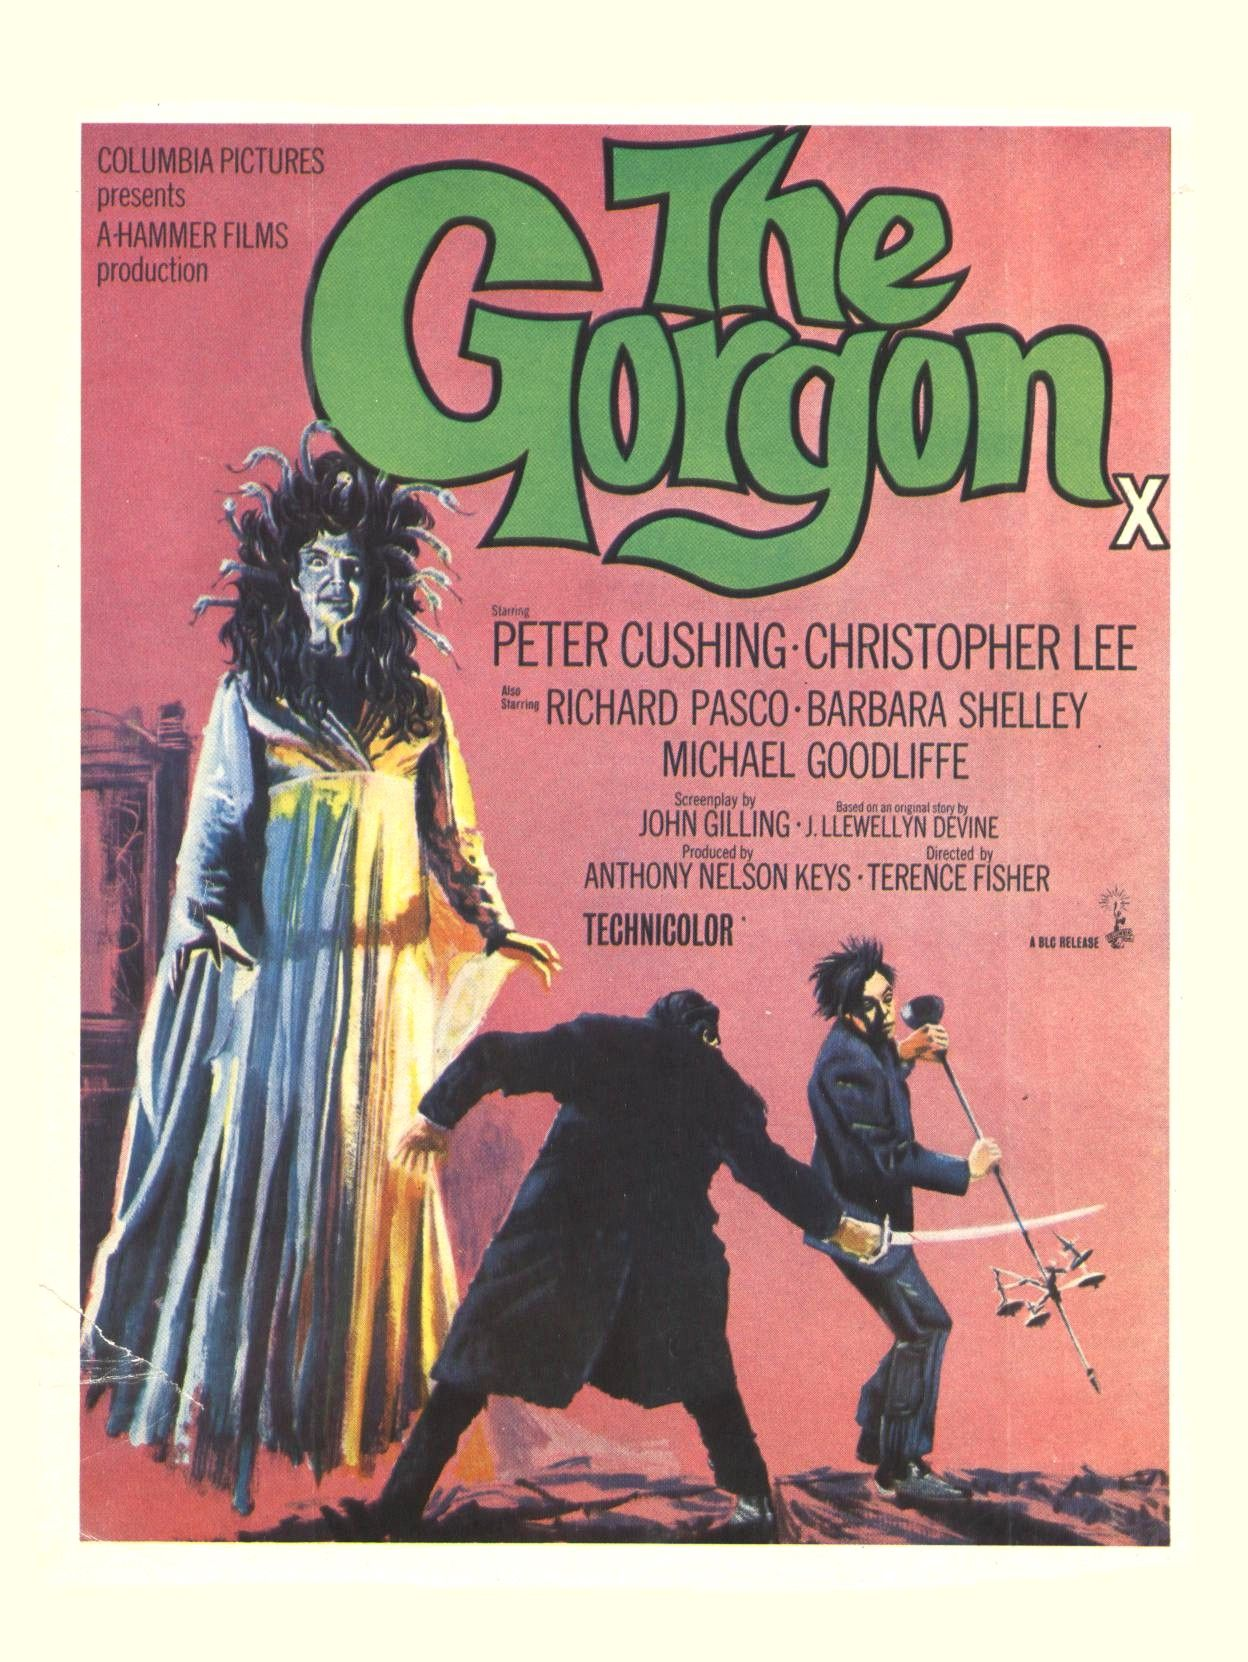 Hammer's The Gorgon (1964).